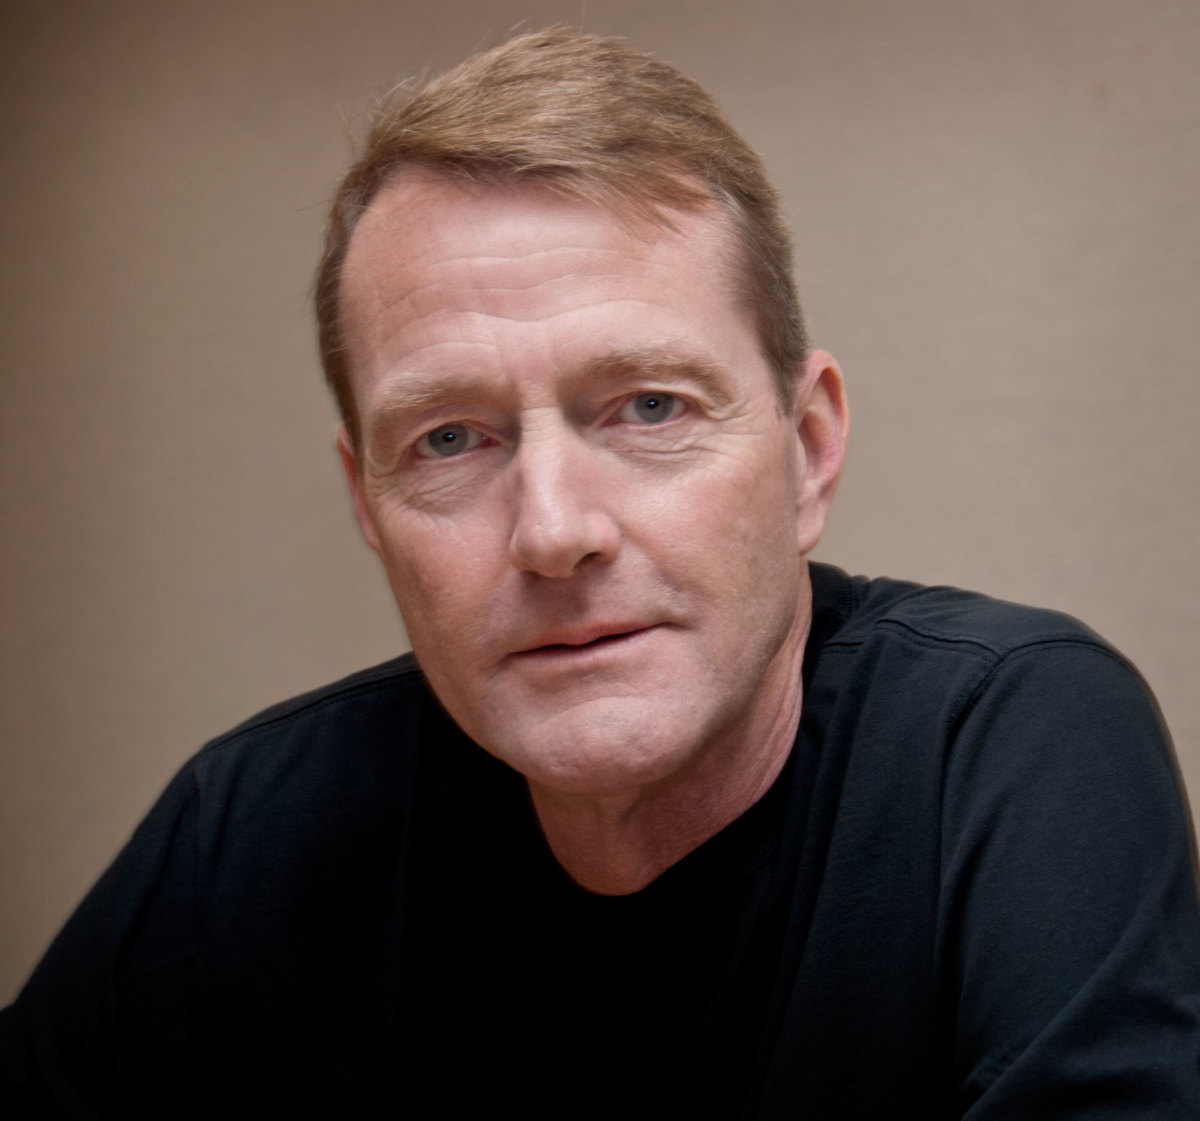 Lee Child, author of Jack Reacher books.  How much would a life of adventure on the road cost?